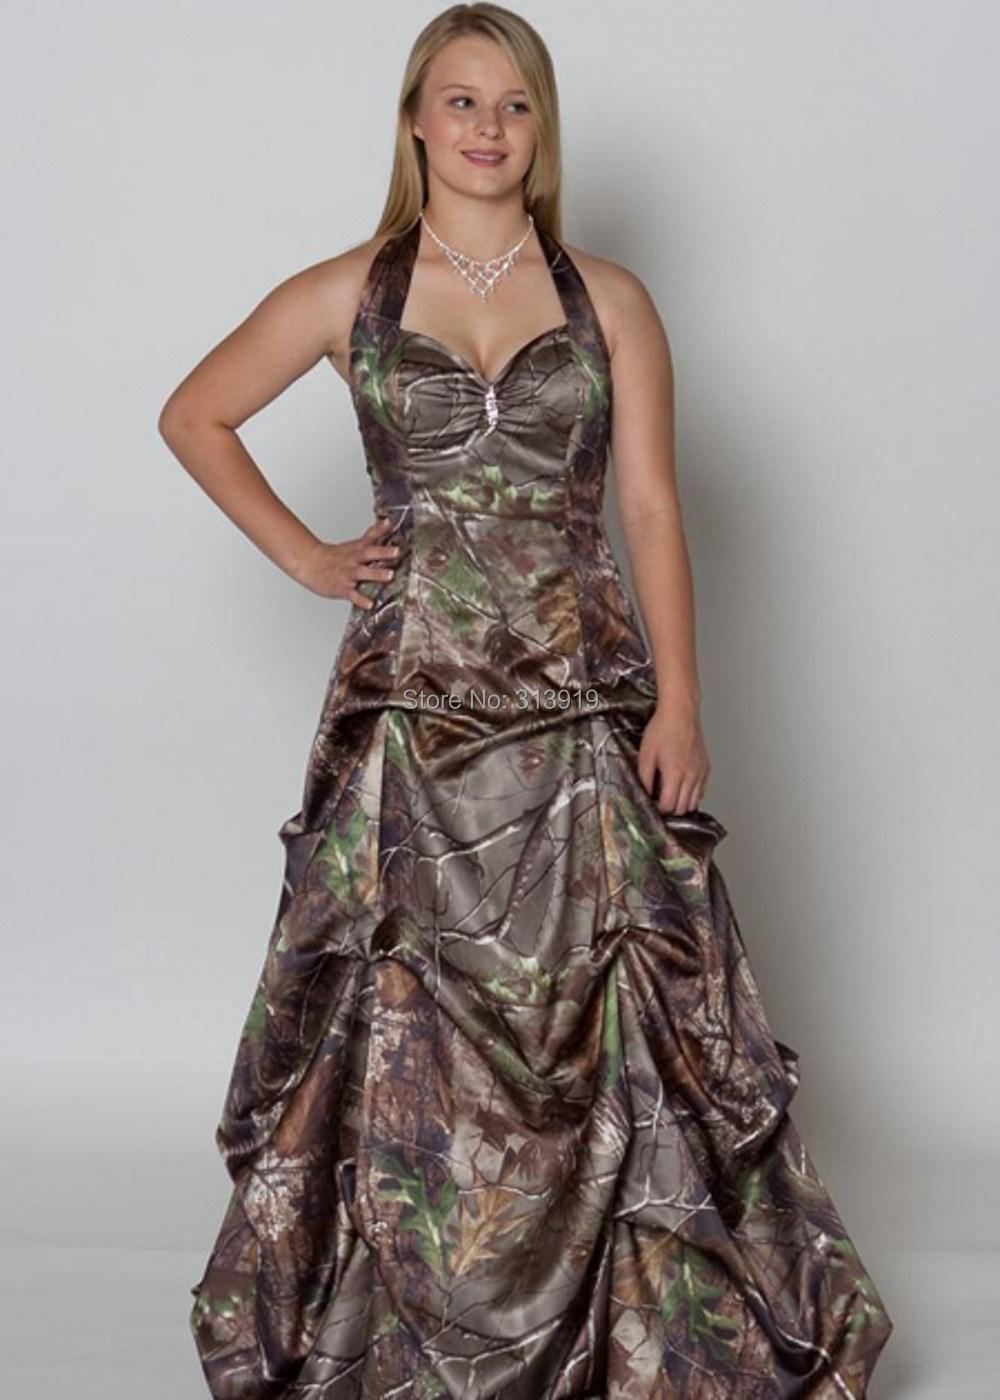 blog camouflage wedding dress For the men s vests they come in Mossy Oak Breakup or Truetimber Snow camo and are made with quality satin They usually have a ribbon of camo on the back